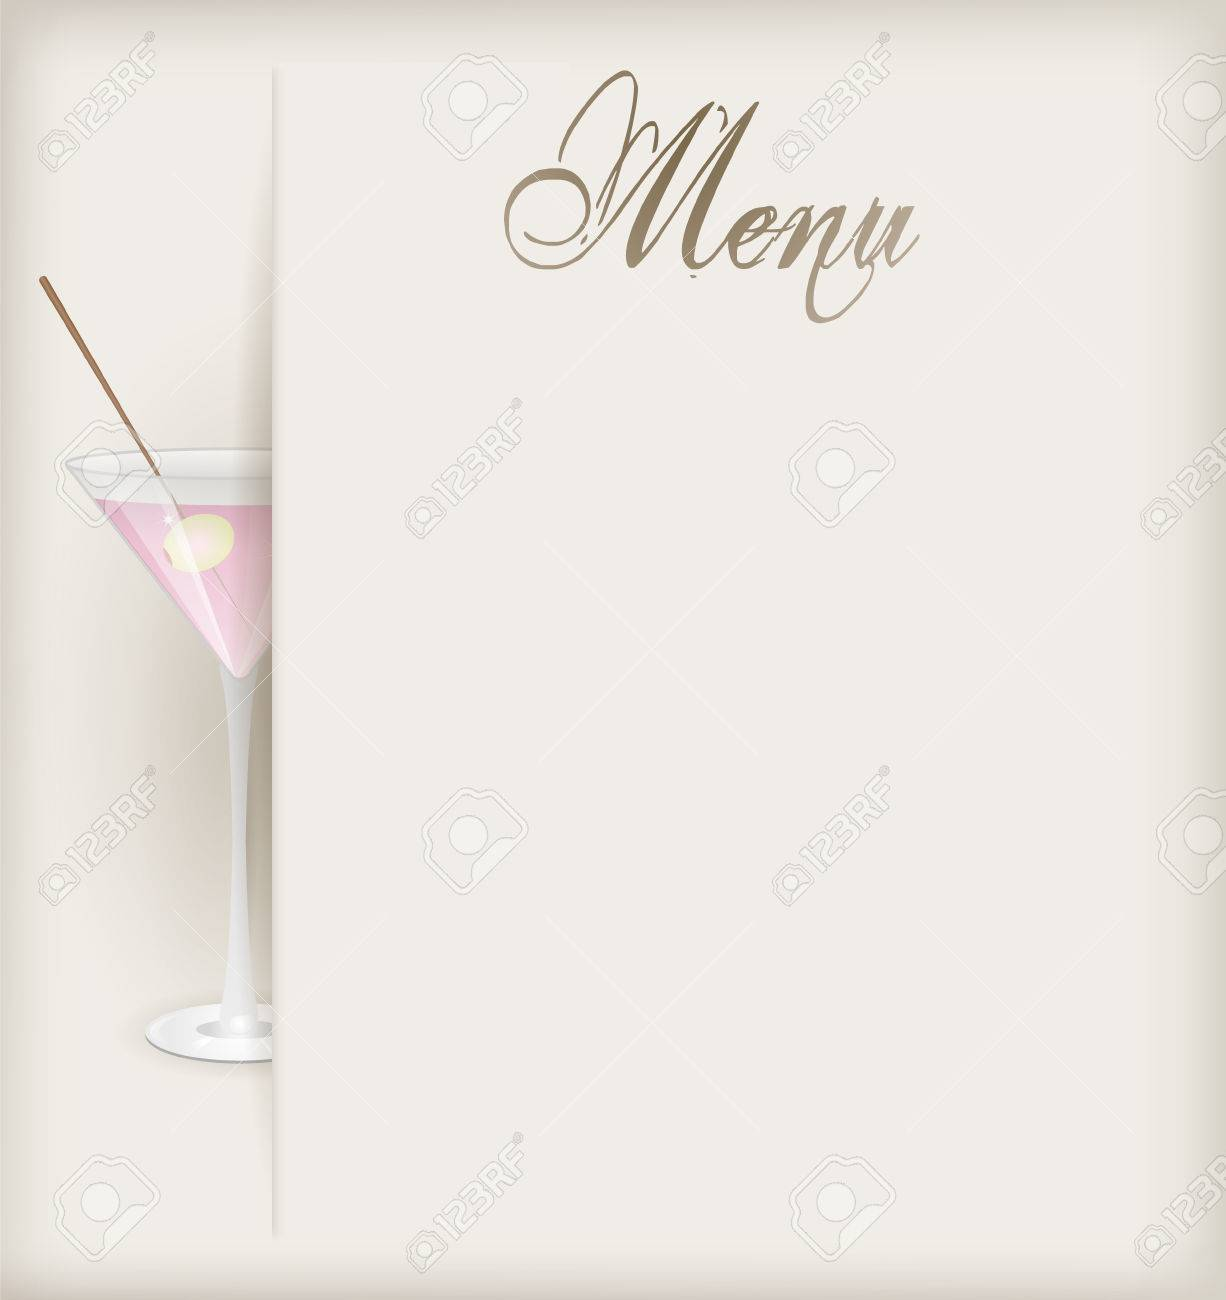 Menu template with glass of pink martini Stock Vector - 23257726